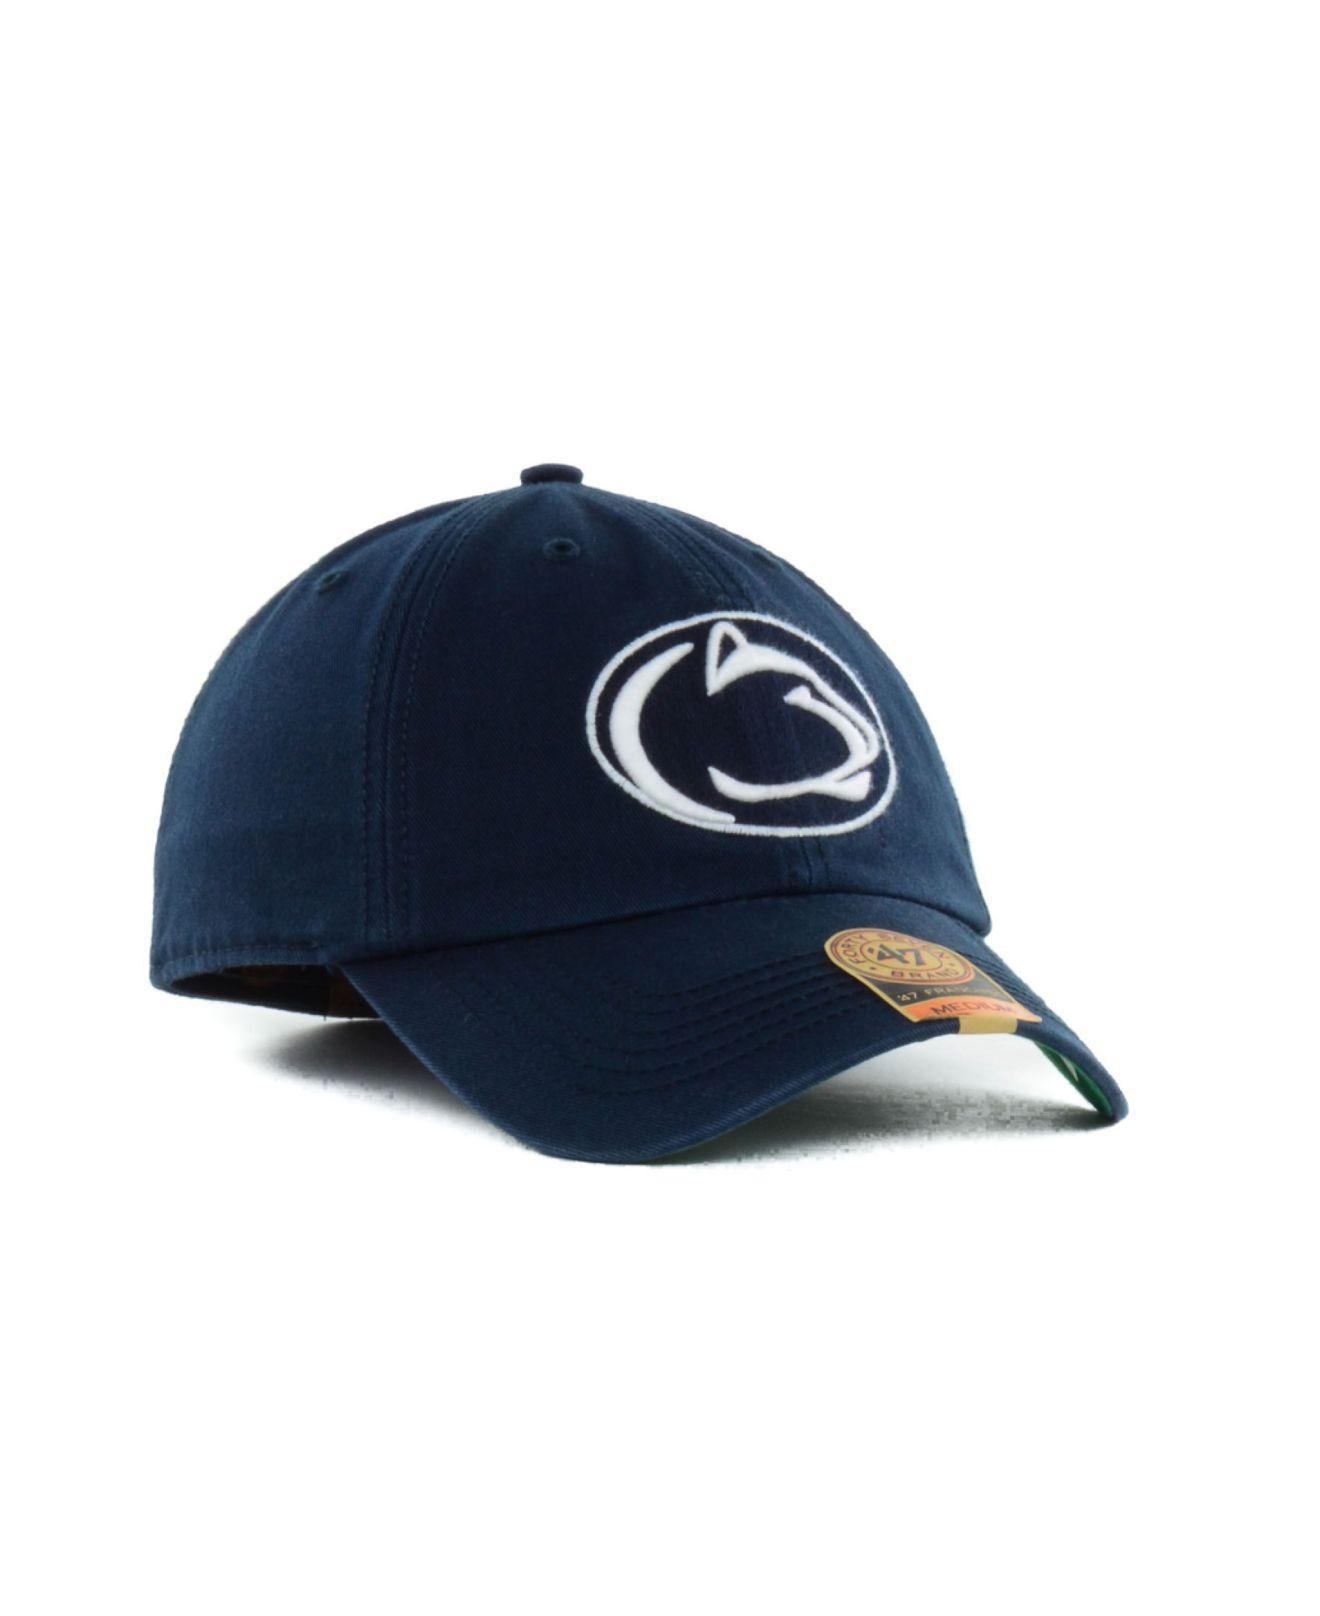 49c89a454064a ... Penn State Nittany Lions Ncaa  47 Franchise Cap for Men -. View  fullscreen